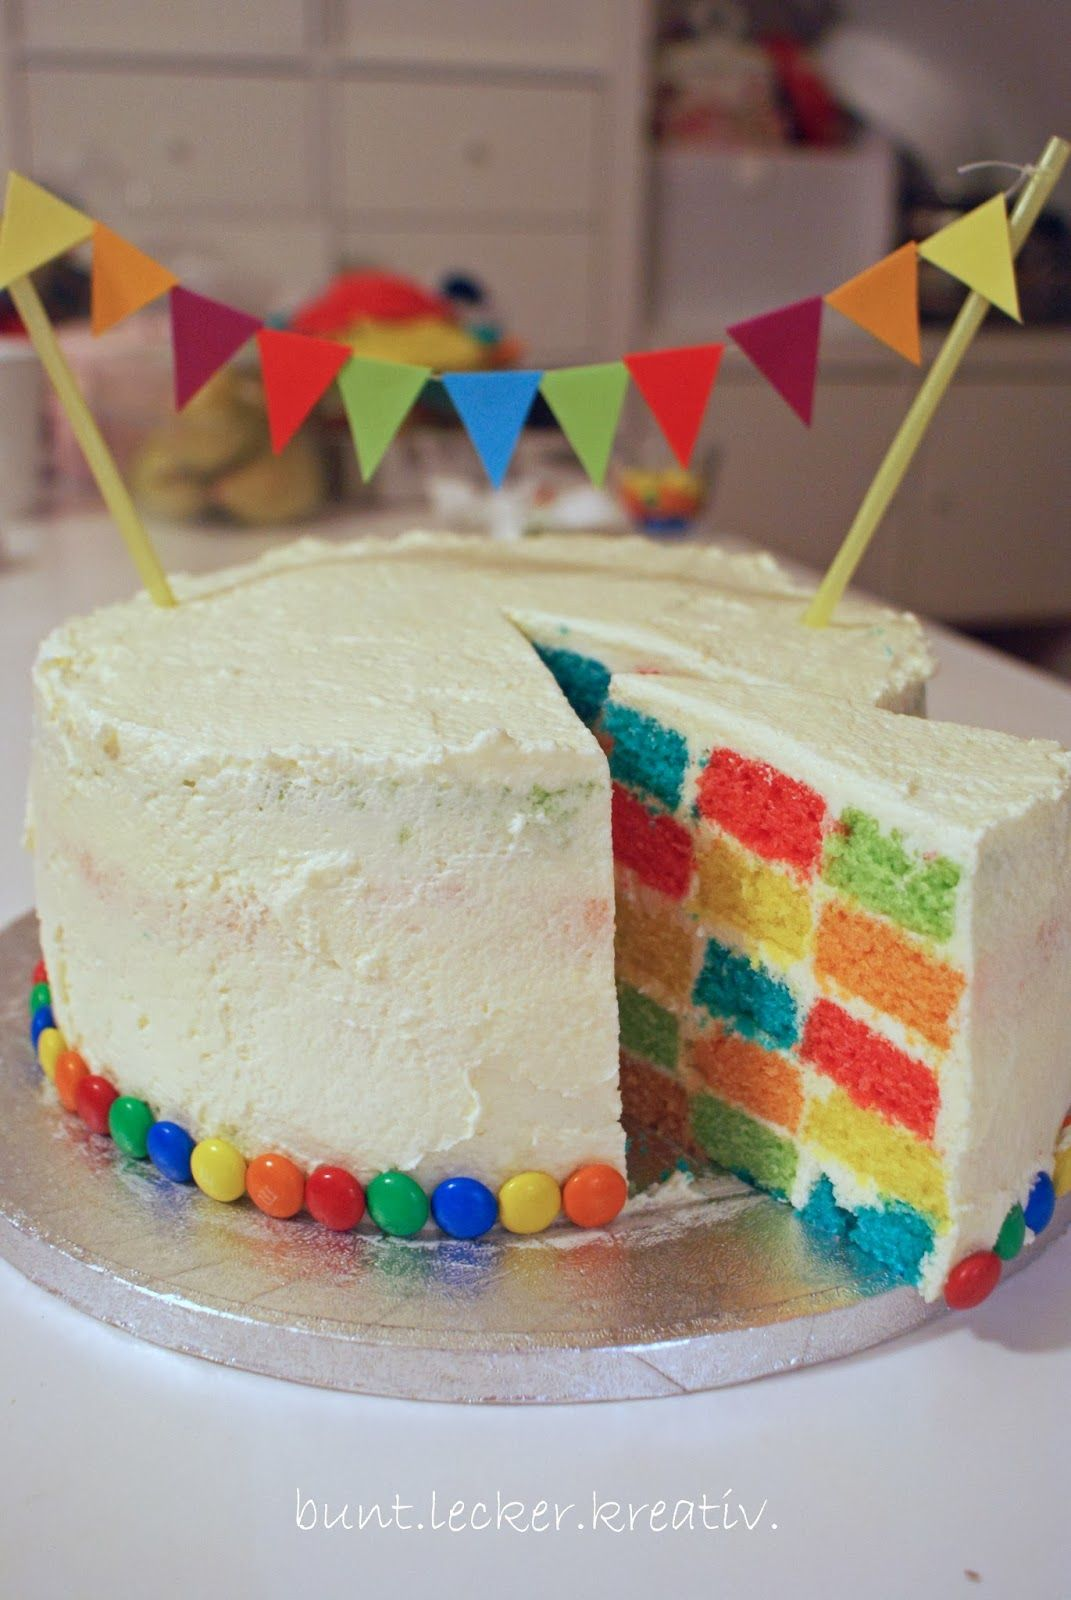 Photo of bunte Schachbrett Torte …colorful surprise inside cake